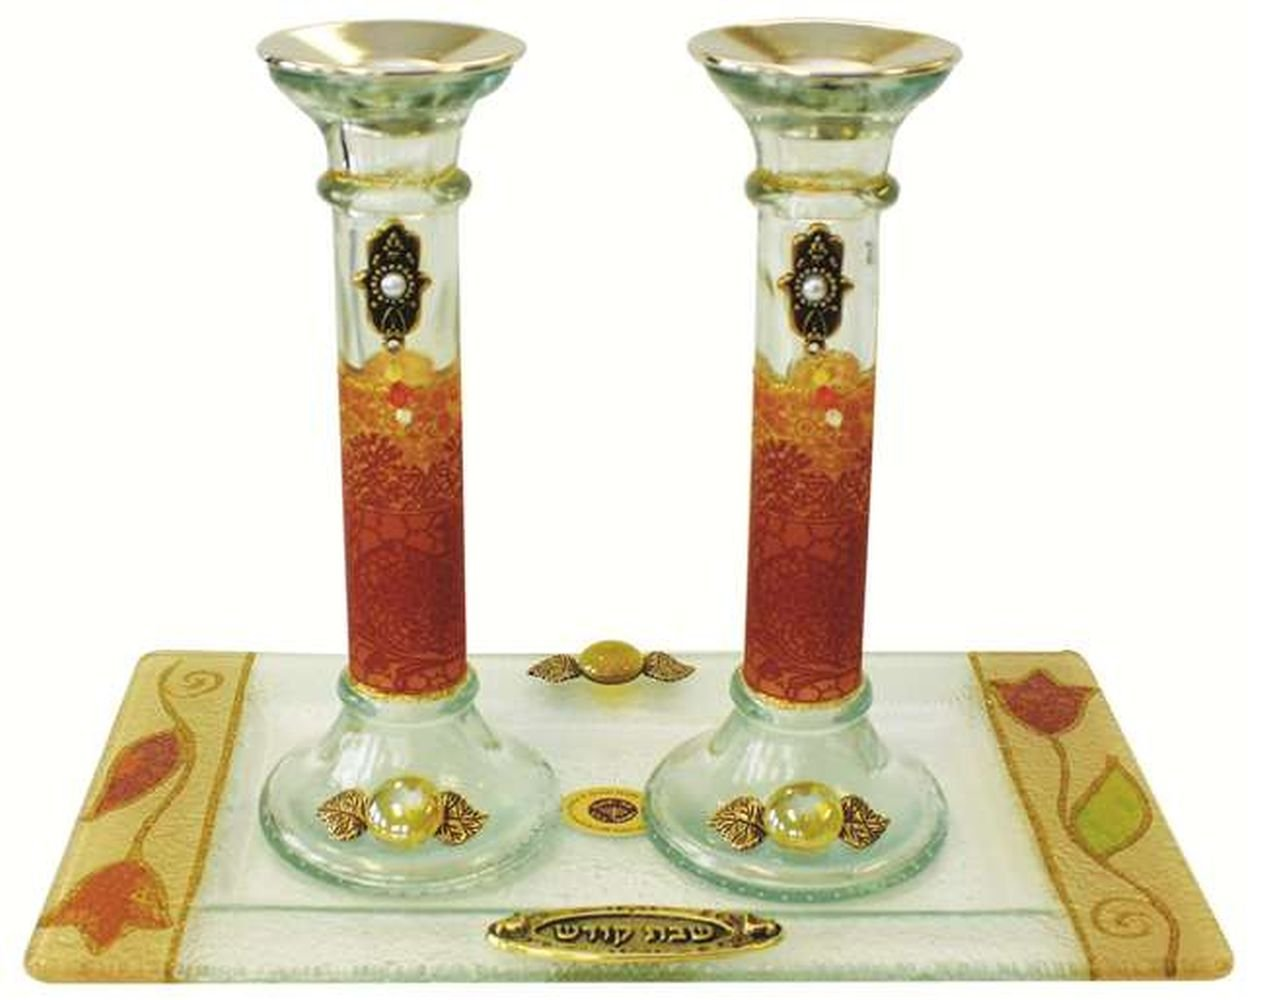 Ultimate Judaica Candle Stick With Tray Large Applique - Colorful - Tray 10'' W X 5'' L - Candlesticks - 7.5'' H